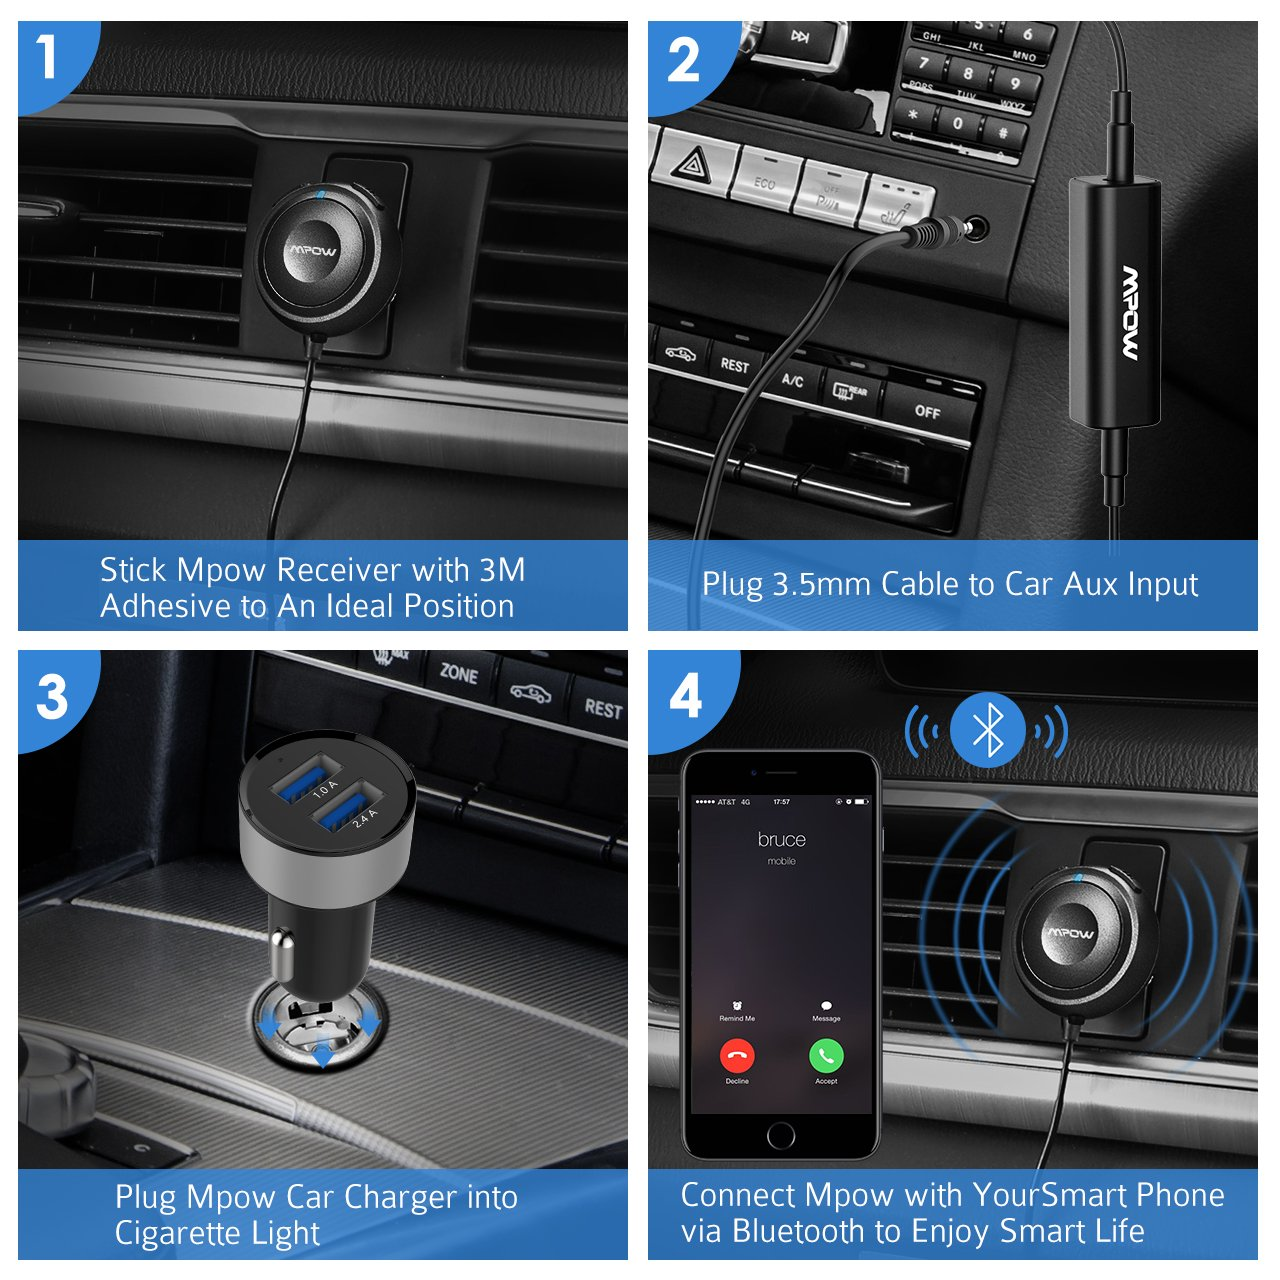 Mpow Bluetooth Receiver Car, Hands-Free Car Kits/Bluetooth AUX Car Adapter 3 in 1 Dual USB Car Charger & Ground Loop Noise Isolator Car Audio System (HFP/HSP/A2DP/AVRCP) by Mpow (Image #7)